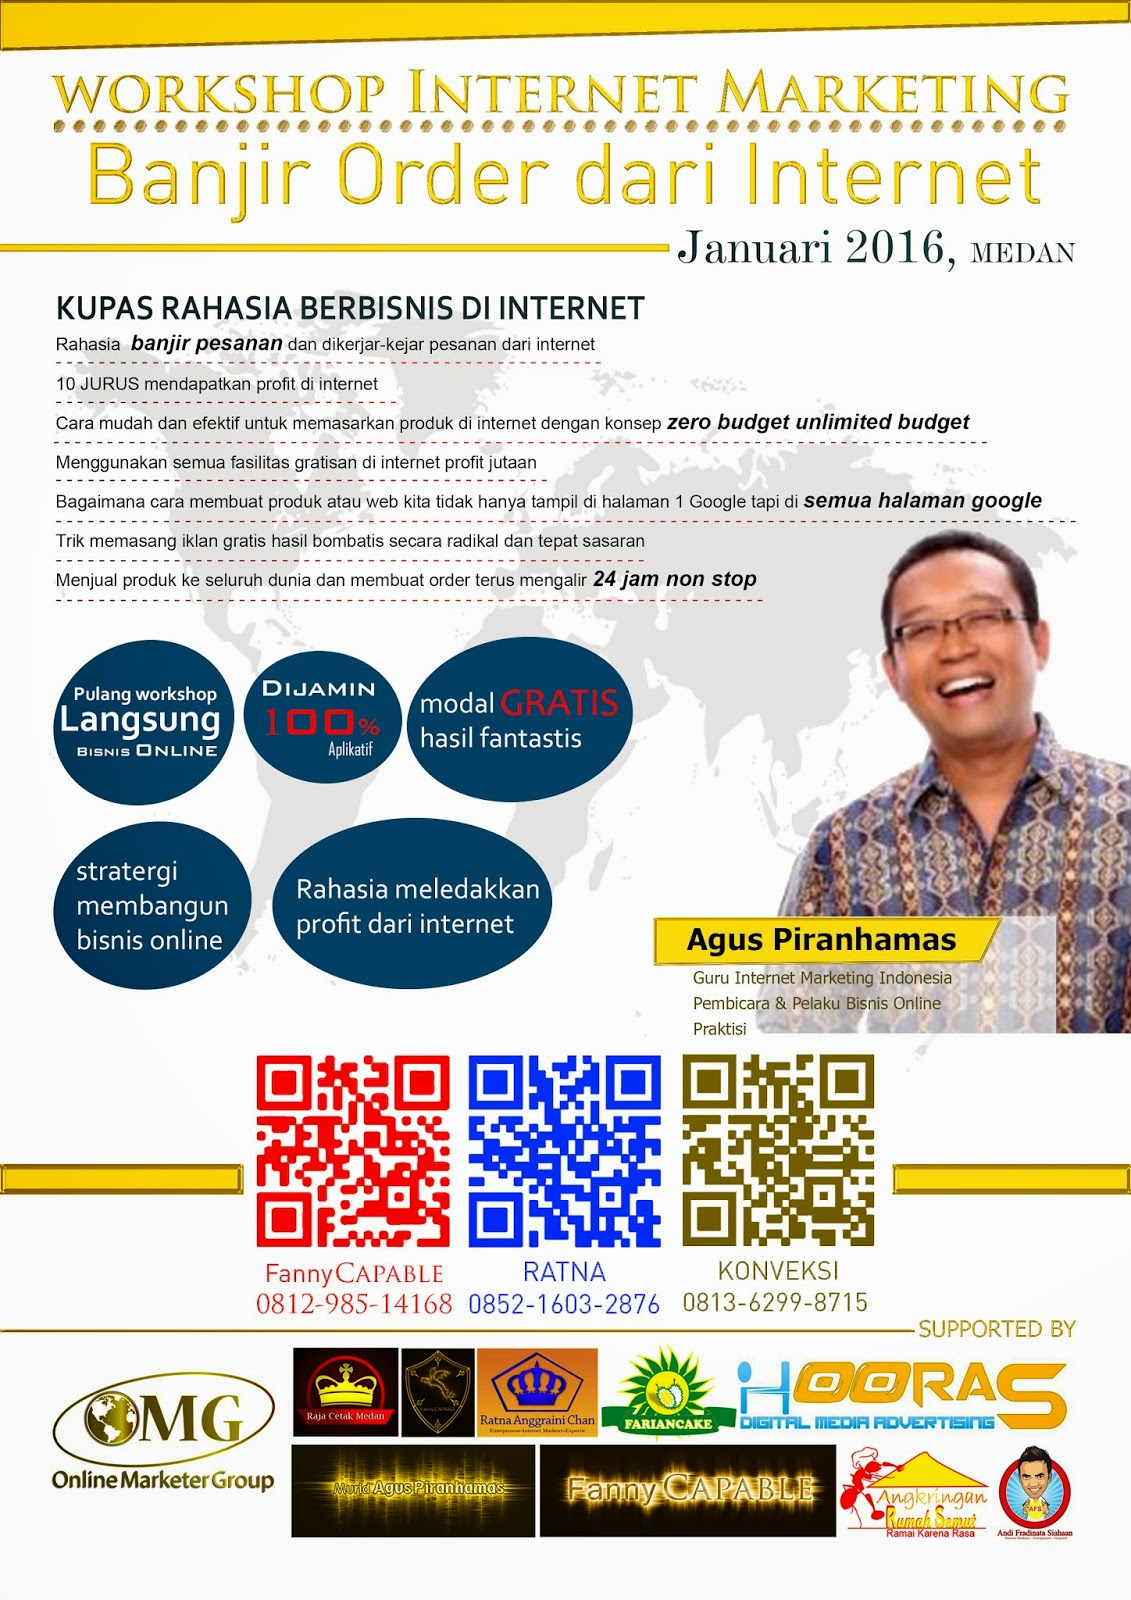 Workshop Internet Marketing 2016